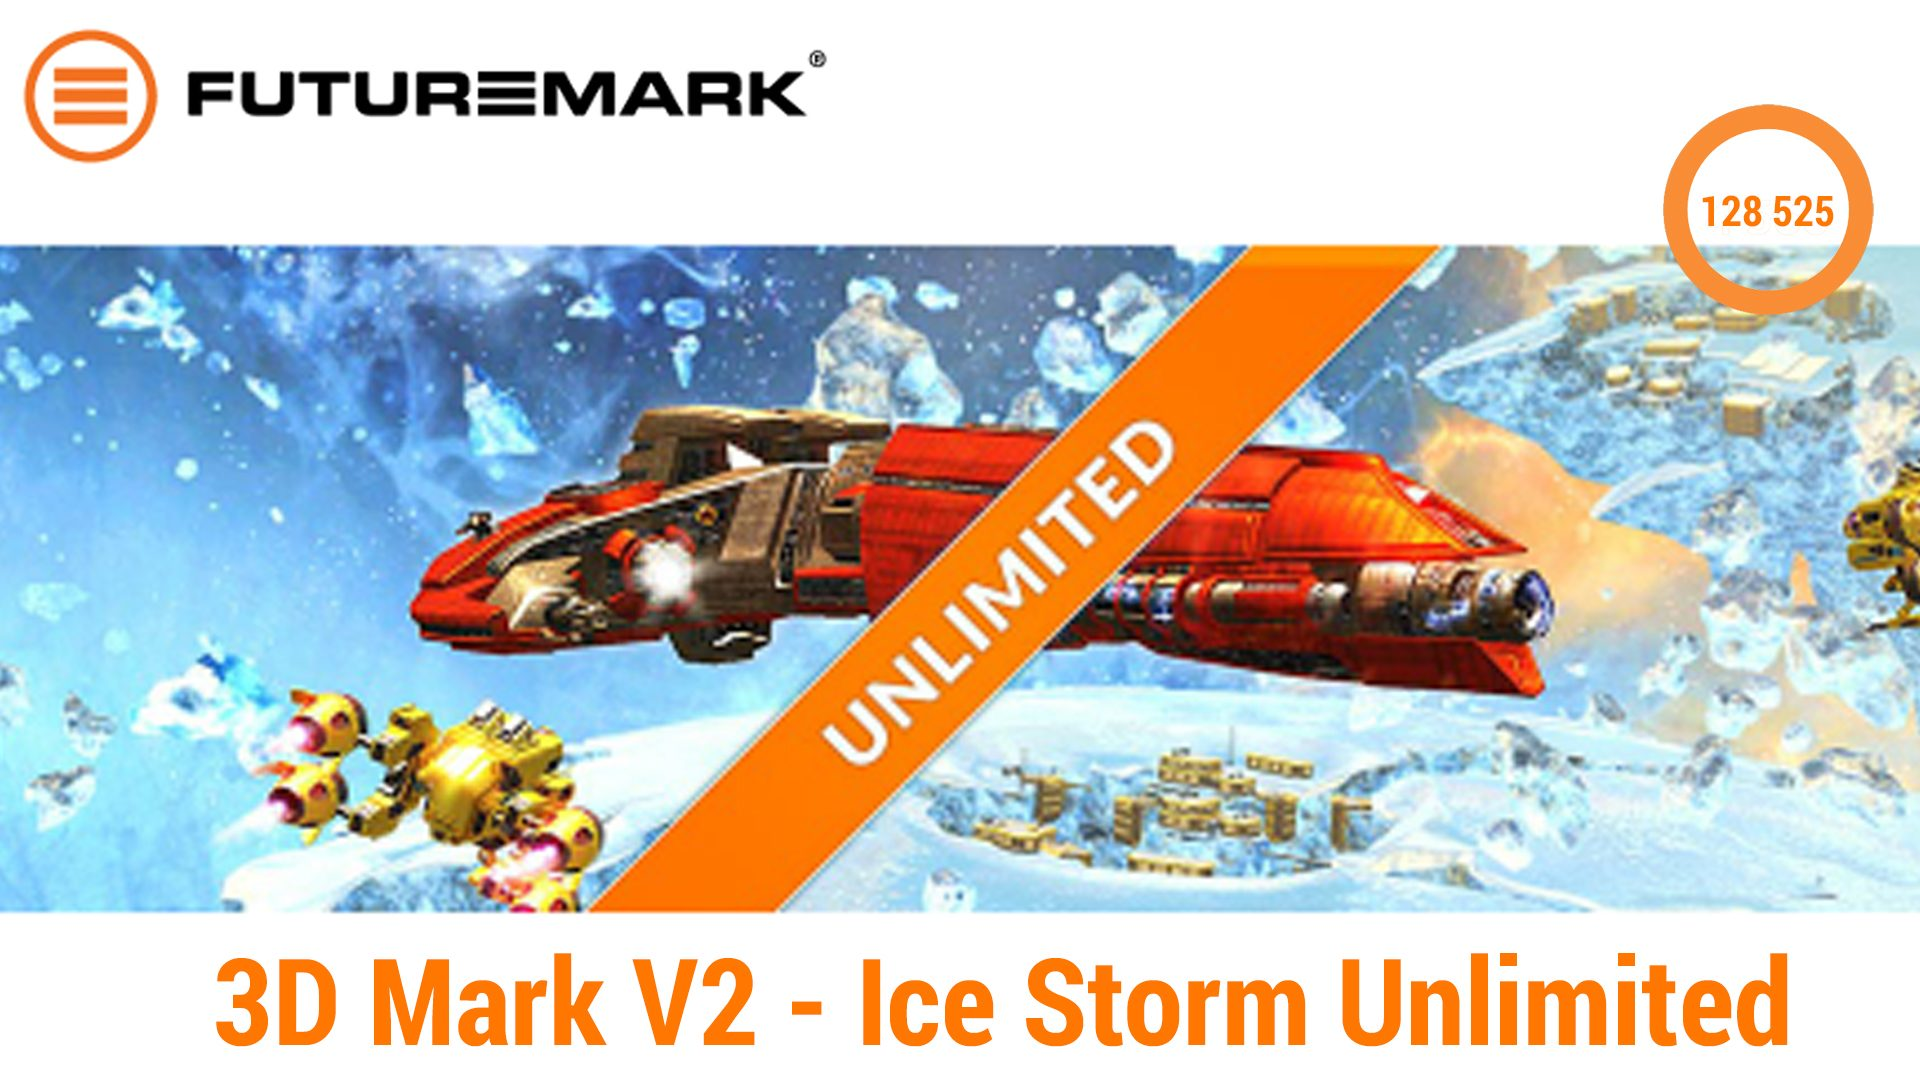 HP-OMEN-15-ax008ng – 3D-Mark-V2—Ice-Storm-Unlimited